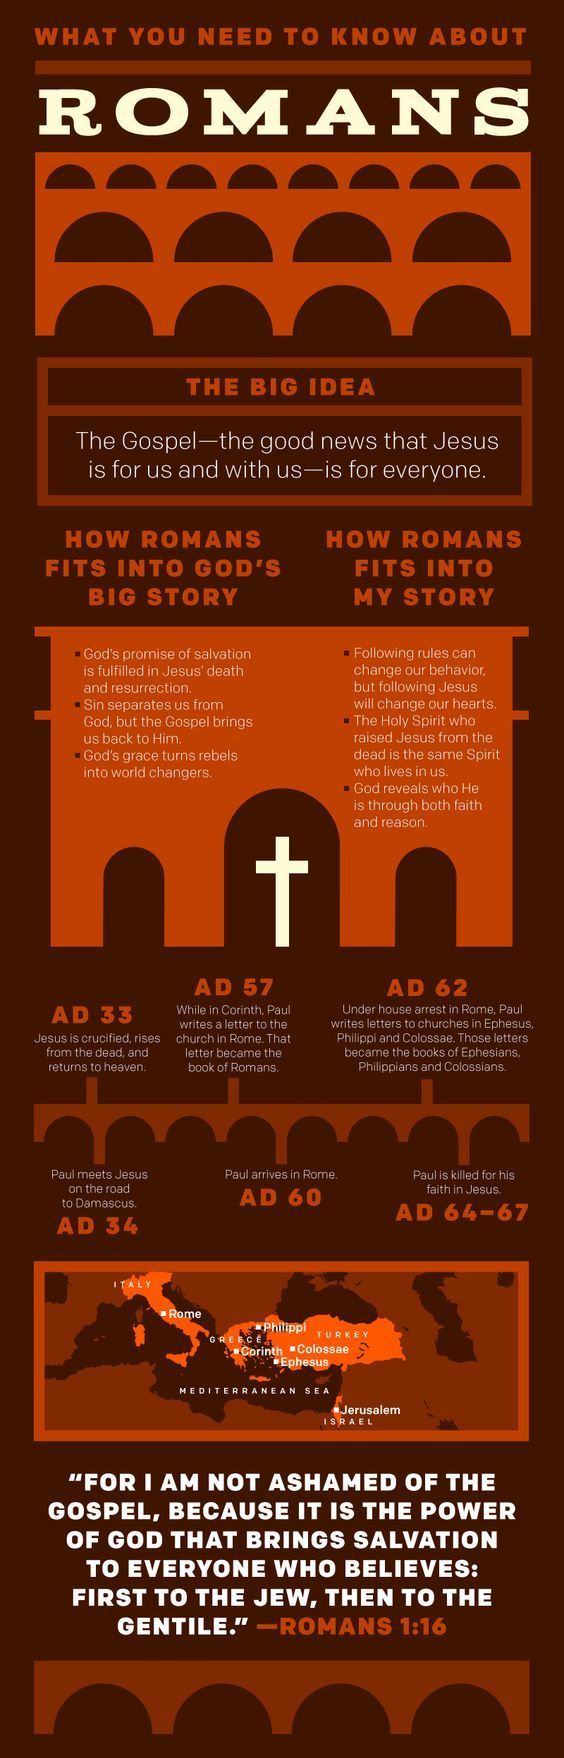 Everything You Need To Know About Romans | Articles | NewSpring Church: